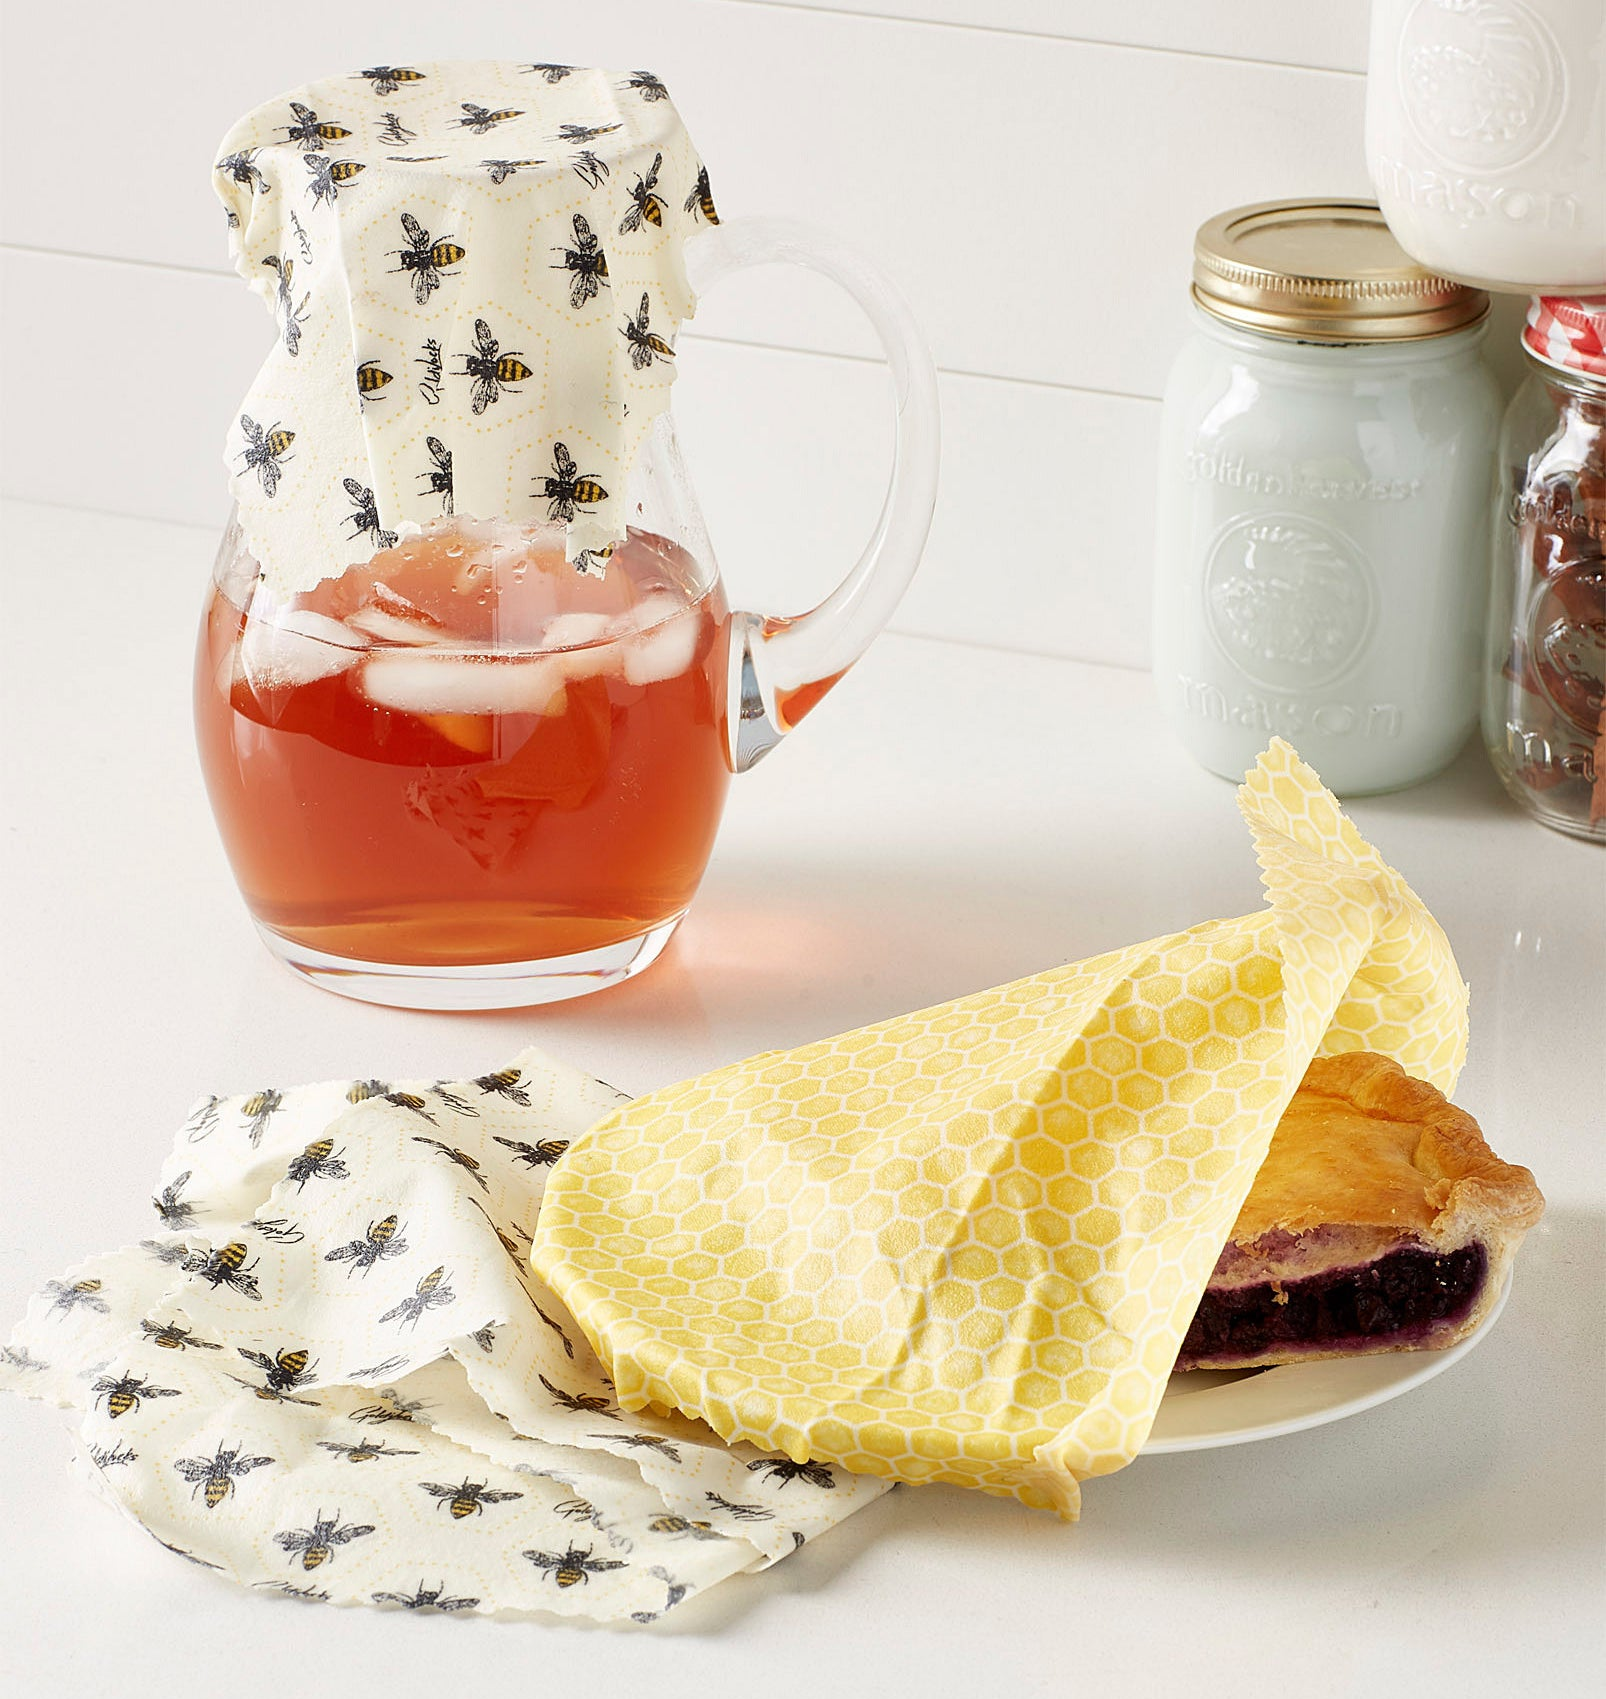 Three wraps on a counter covering a pitcher of juice and a pie